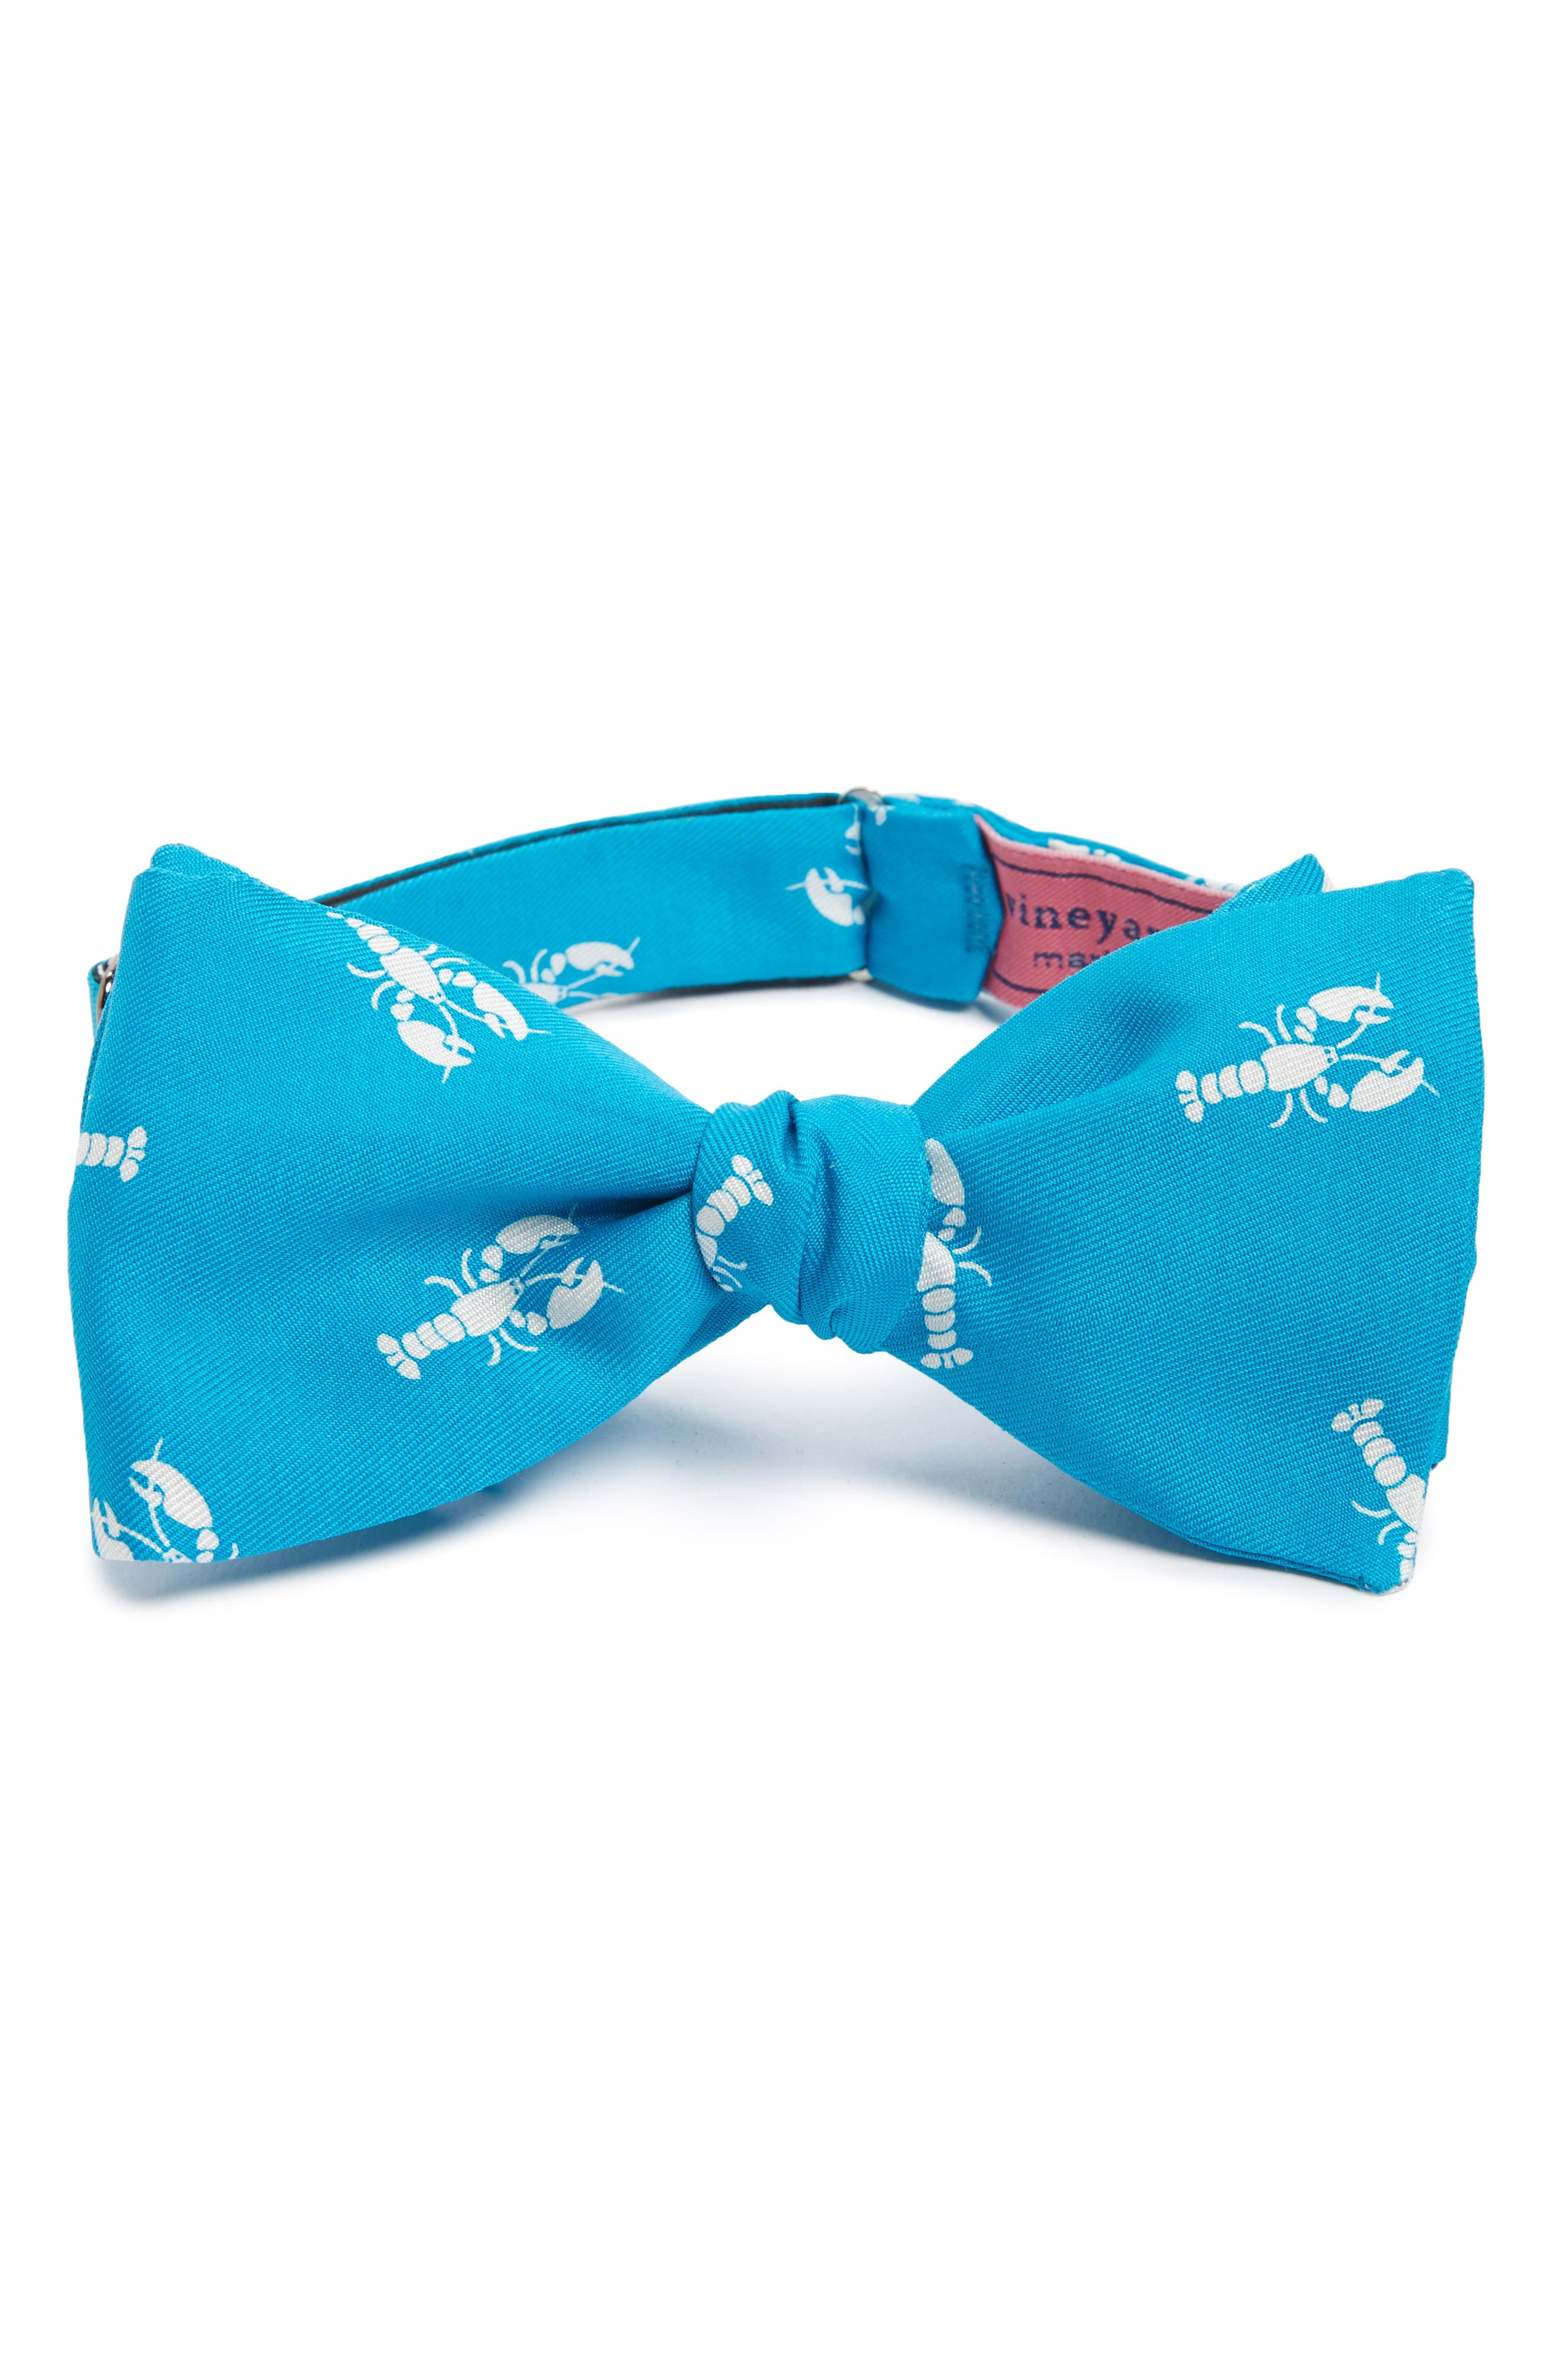 Vineyard Vines Lobster Bow Tie